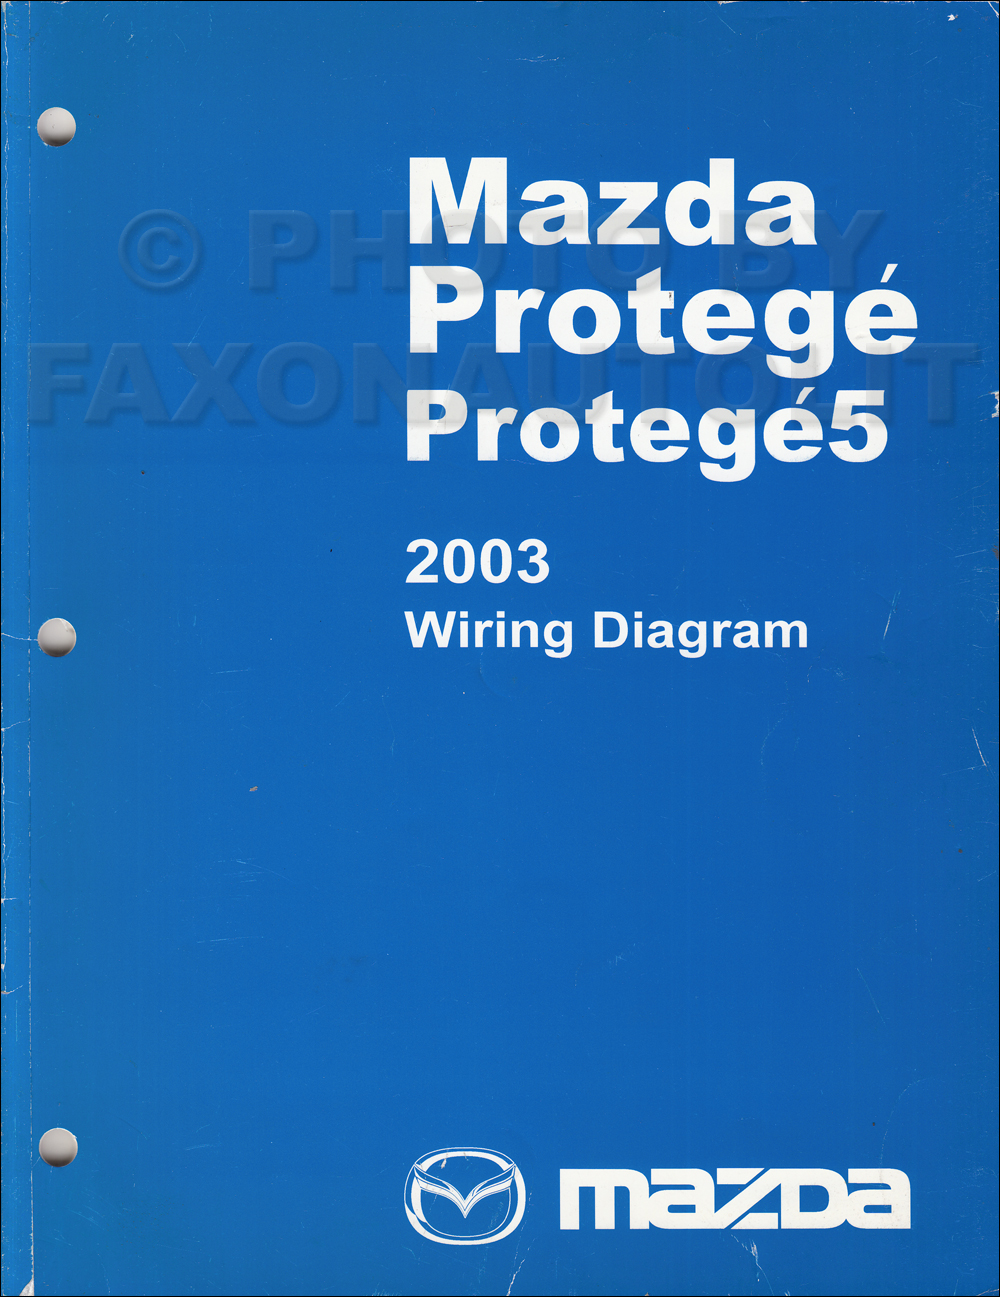 hight resolution of 2003 mazda protege and protege5 wiring diagram manual original mazda 5 mazda protege wiring source 2000 mazda protege stereo